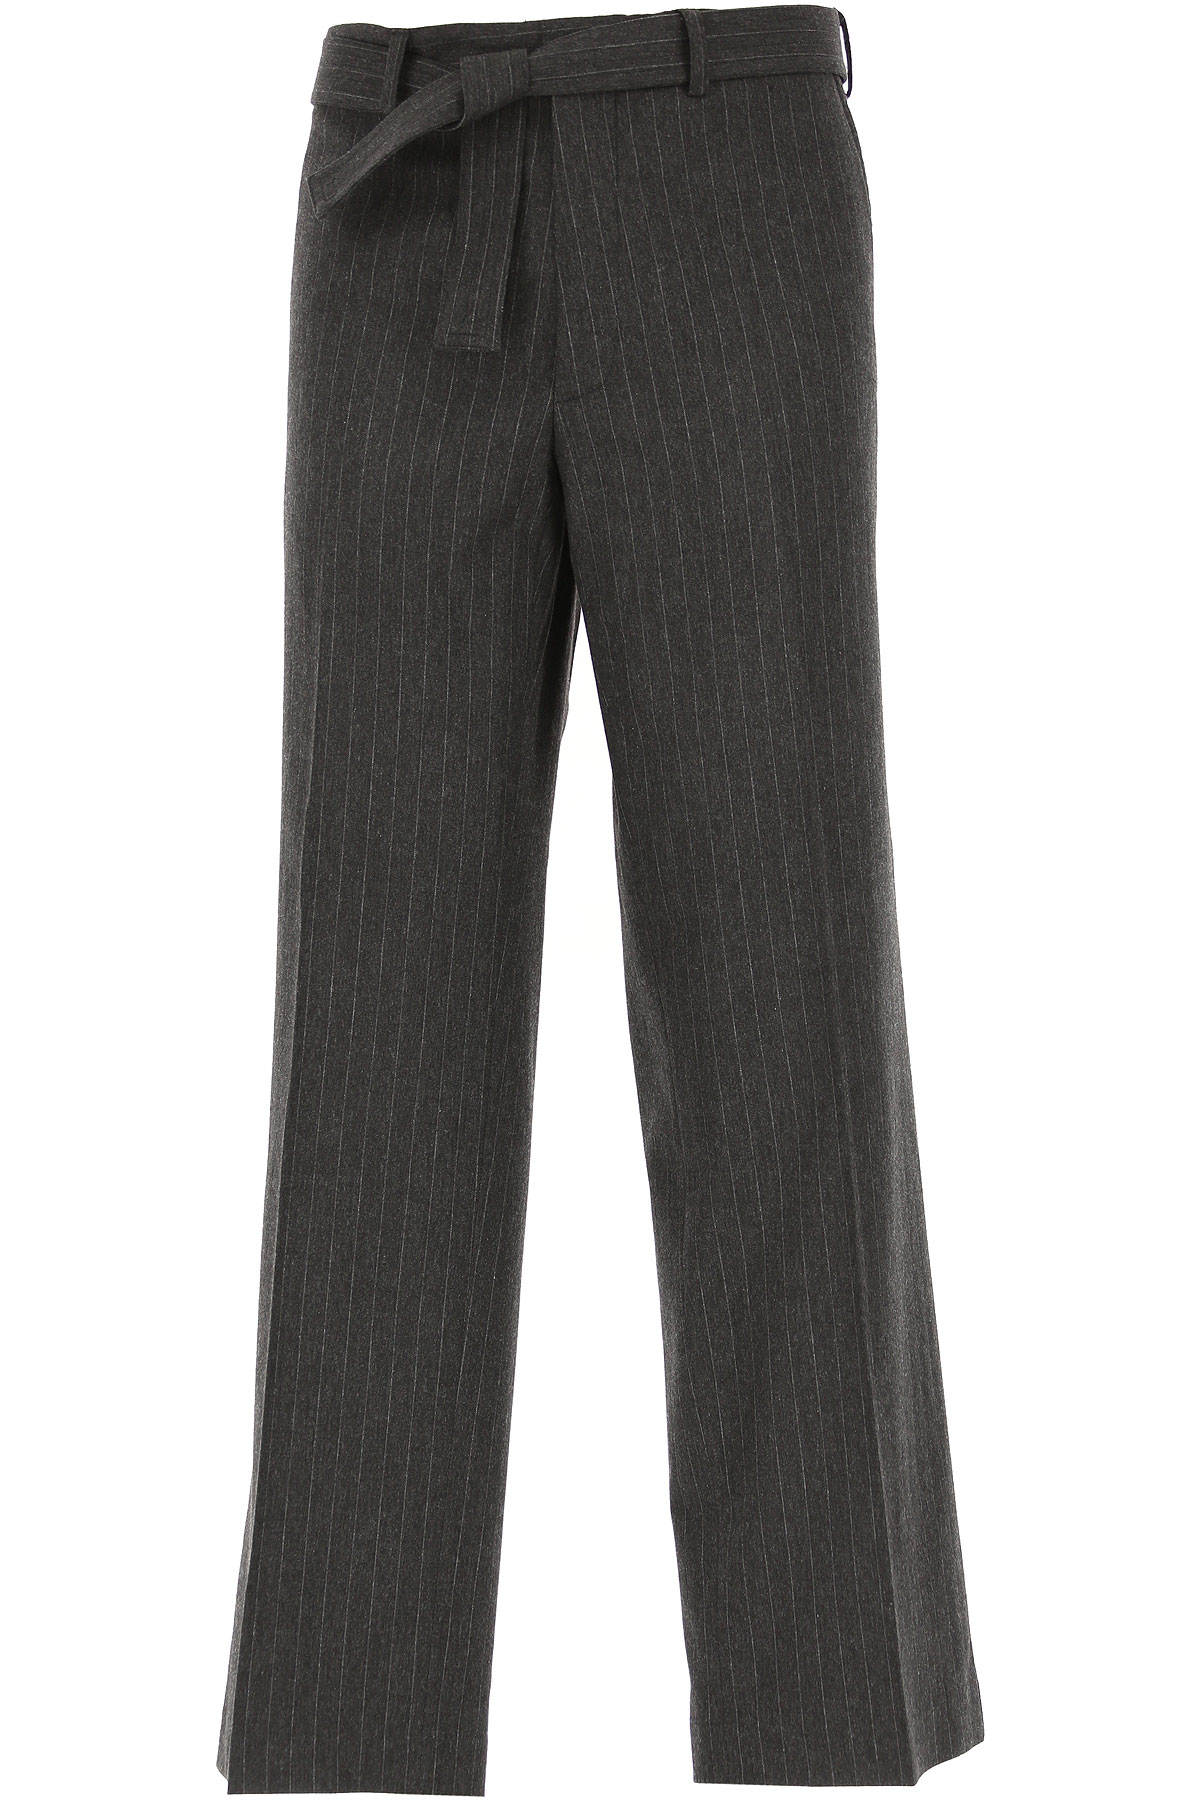 Maison Flaneur Pants for Men On Sale, Anthracite, polyester, 2019, 30 32 34 36